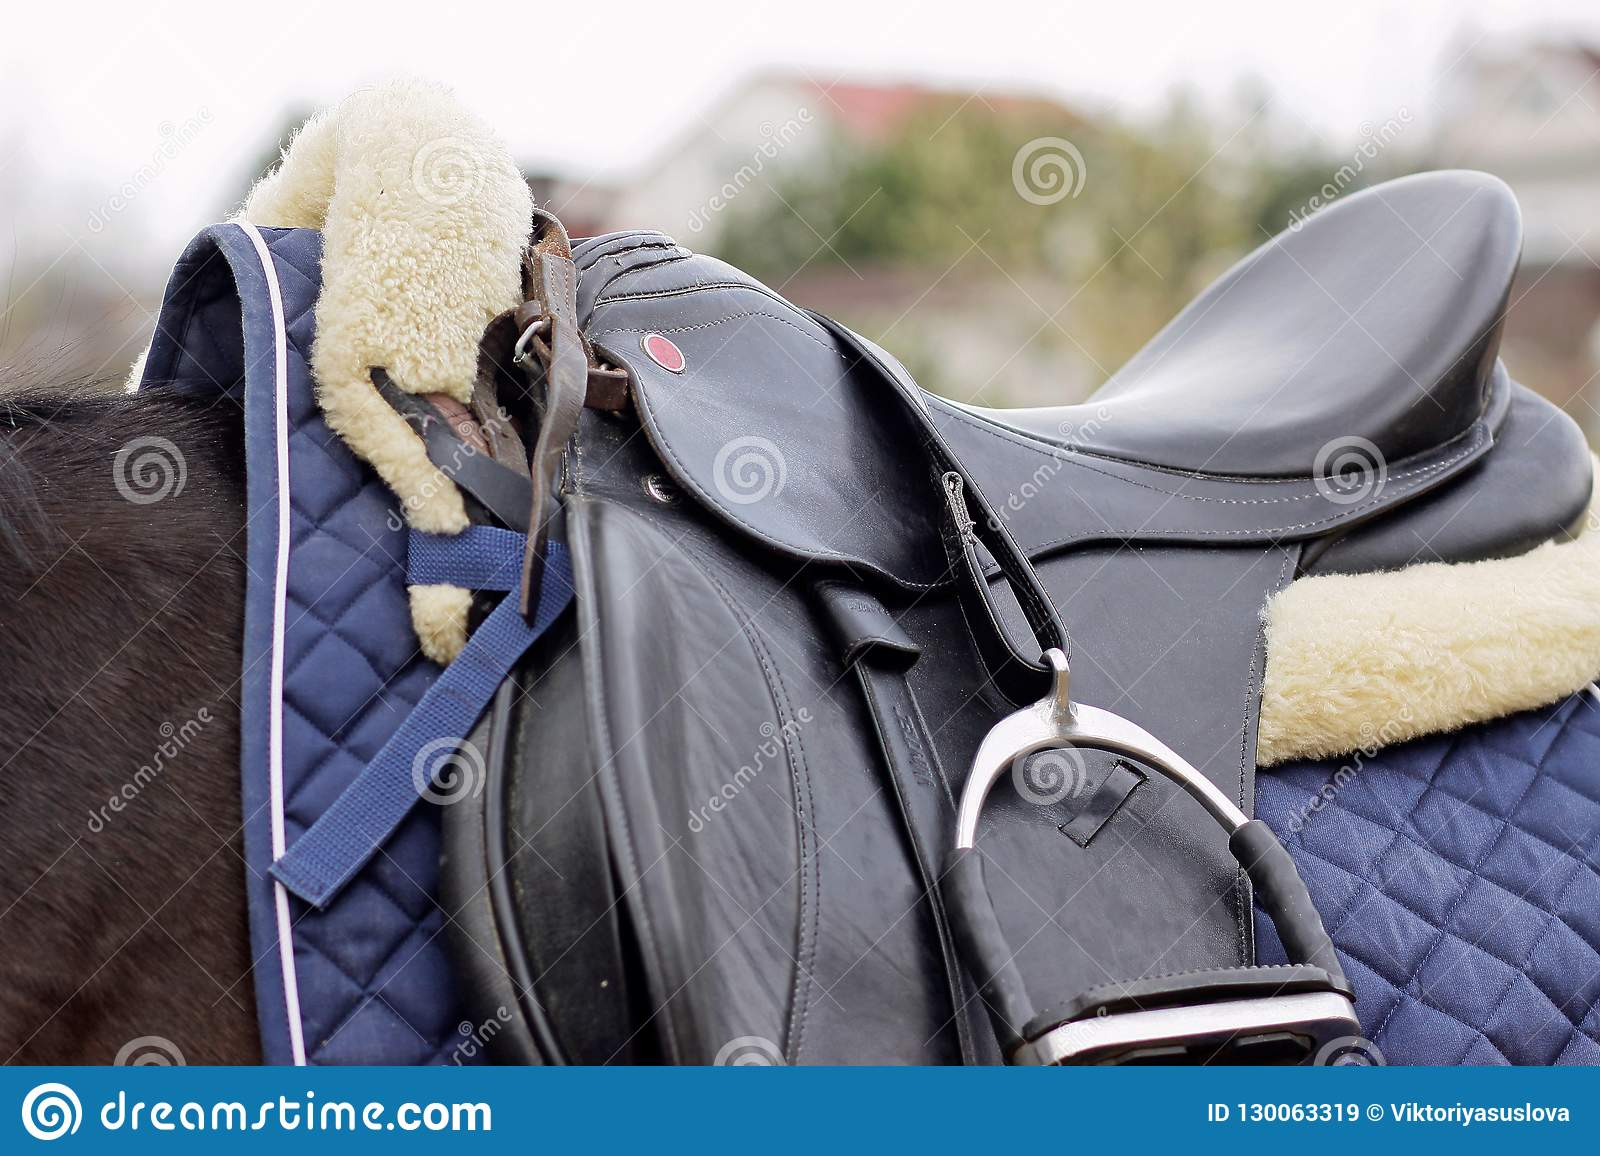 Leather Black Seat And White Fur Saddle Cloth Stock Image Image Of Horse Items 130063319